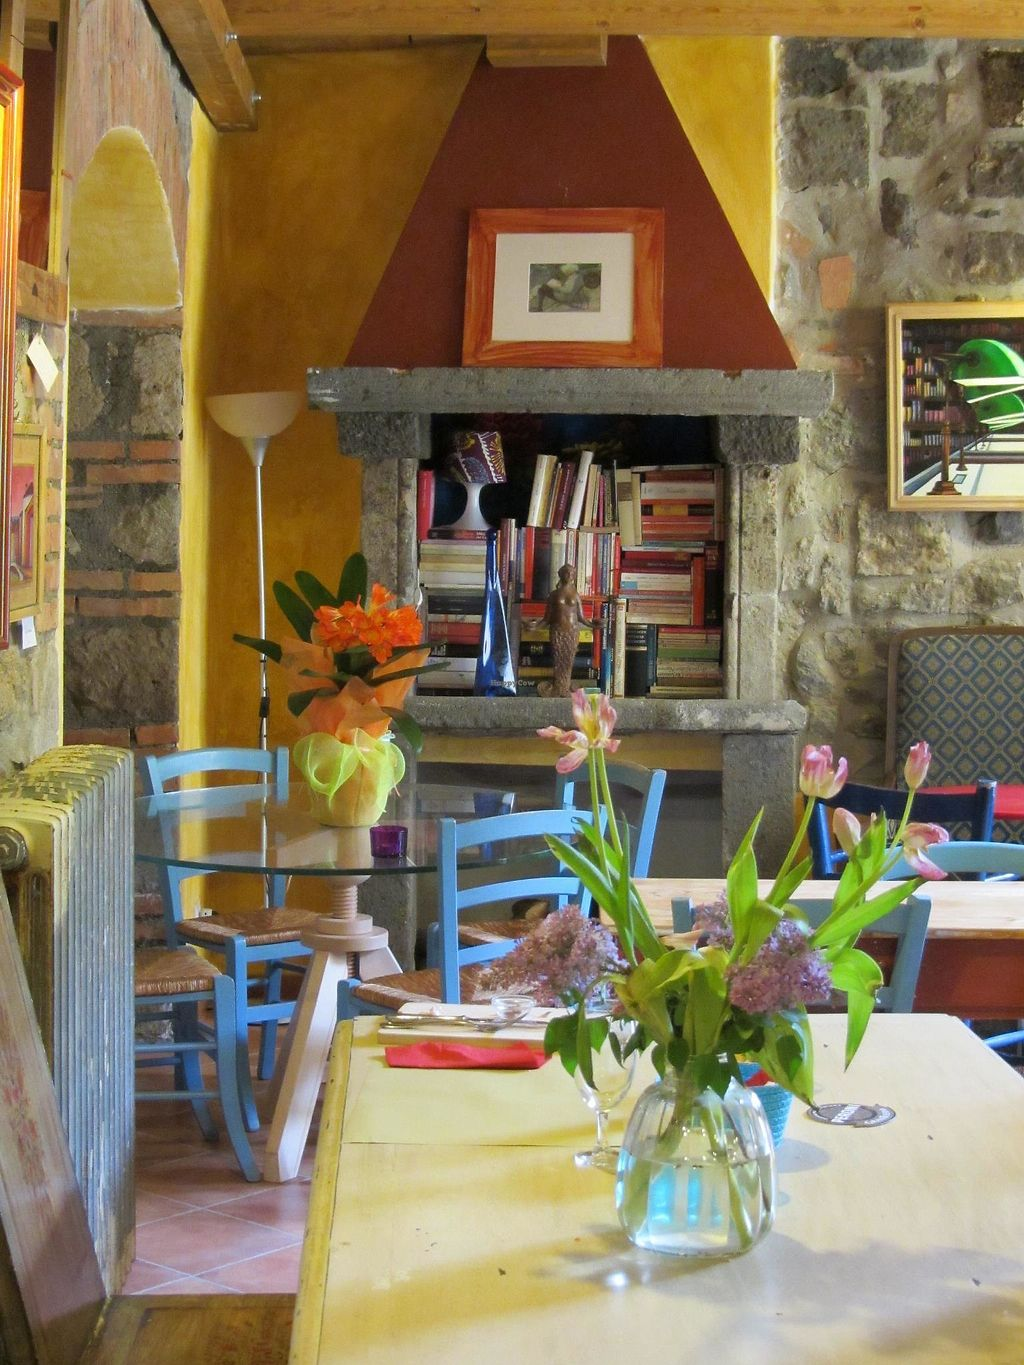 """Photo of Le Sorgenti Libr'Osteria  by <a href=""""/members/profile/KatiaMaurelli"""">KatiaMaurelli</a> <br/>the lunch room <br/> January 3, 2018  - <a href='/contact/abuse/image/78810/342585'>Report</a>"""